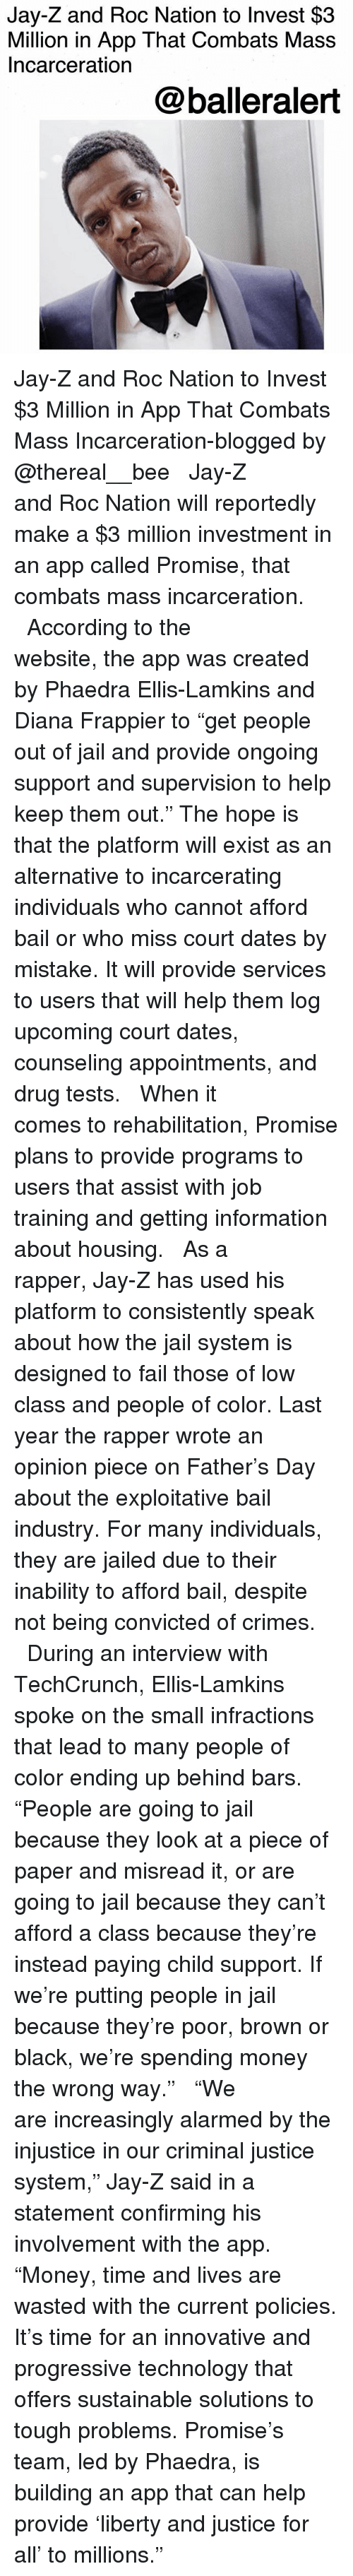 "Alarmed: Jay-Z and Roc Nation to Invest $3  Million in App That Combats Mass  Incarceration  @balleralert Jay-Z and Roc Nation to Invest $3 Million in App That Combats Mass Incarceration-blogged by @thereal__bee ⠀⠀⠀⠀⠀⠀⠀⠀⠀ ⠀⠀ Jay-Z and Roc Nation will reportedly make a $3 million investment in an app called Promise, that combats mass incarceration. ⠀⠀⠀⠀⠀⠀⠀⠀⠀ ⠀⠀ According to the website, the app was created by Phaedra Ellis-Lamkins and Diana Frappier to ""get people out of jail and provide ongoing support and supervision to help keep them out."" The hope is that the platform will exist as an alternative to incarcerating individuals who cannot afford bail or who miss court dates by mistake. It will provide services to users that will help them log upcoming court dates, counseling appointments, and drug tests. ⠀⠀⠀⠀⠀⠀⠀⠀⠀ ⠀⠀ When it comes to rehabilitation, Promise plans to provide programs to users that assist with job training and getting information about housing. ⠀⠀⠀⠀⠀⠀⠀⠀⠀ ⠀⠀ As a rapper, Jay-Z has used his platform to consistently speak about how the jail system is designed to fail those of low class and people of color. Last year the rapper wrote an opinion piece on Father's Day about the exploitative bail industry. For many individuals, they are jailed due to their inability to afford bail, despite not being convicted of crimes. ⠀⠀⠀⠀⠀⠀⠀⠀⠀ ⠀⠀ During an interview with TechCrunch, Ellis-Lamkins spoke on the small infractions that lead to many people of color ending up behind bars. ""People are going to jail because they look at a piece of paper and misread it, or are going to jail because they can't afford a class because they're instead paying child support. If we're putting people in jail because they're poor, brown or black, we're spending money the wrong way."" ⠀⠀⠀⠀⠀⠀⠀⠀⠀ ⠀⠀ ""We are increasingly alarmed by the injustice in our criminal justice system,"" Jay-Z said in a statement confirming his involvement with the app. ""Money, time and lives are wasted with the current policies. It's time for an innovative and progressive technology that offers sustainable solutions to tough problems. Promise's team, led by Phaedra, is building an app that can help provide 'liberty and justice for all' to millions."" ⠀⠀⠀⠀⠀⠀⠀⠀⠀ ⠀⠀"